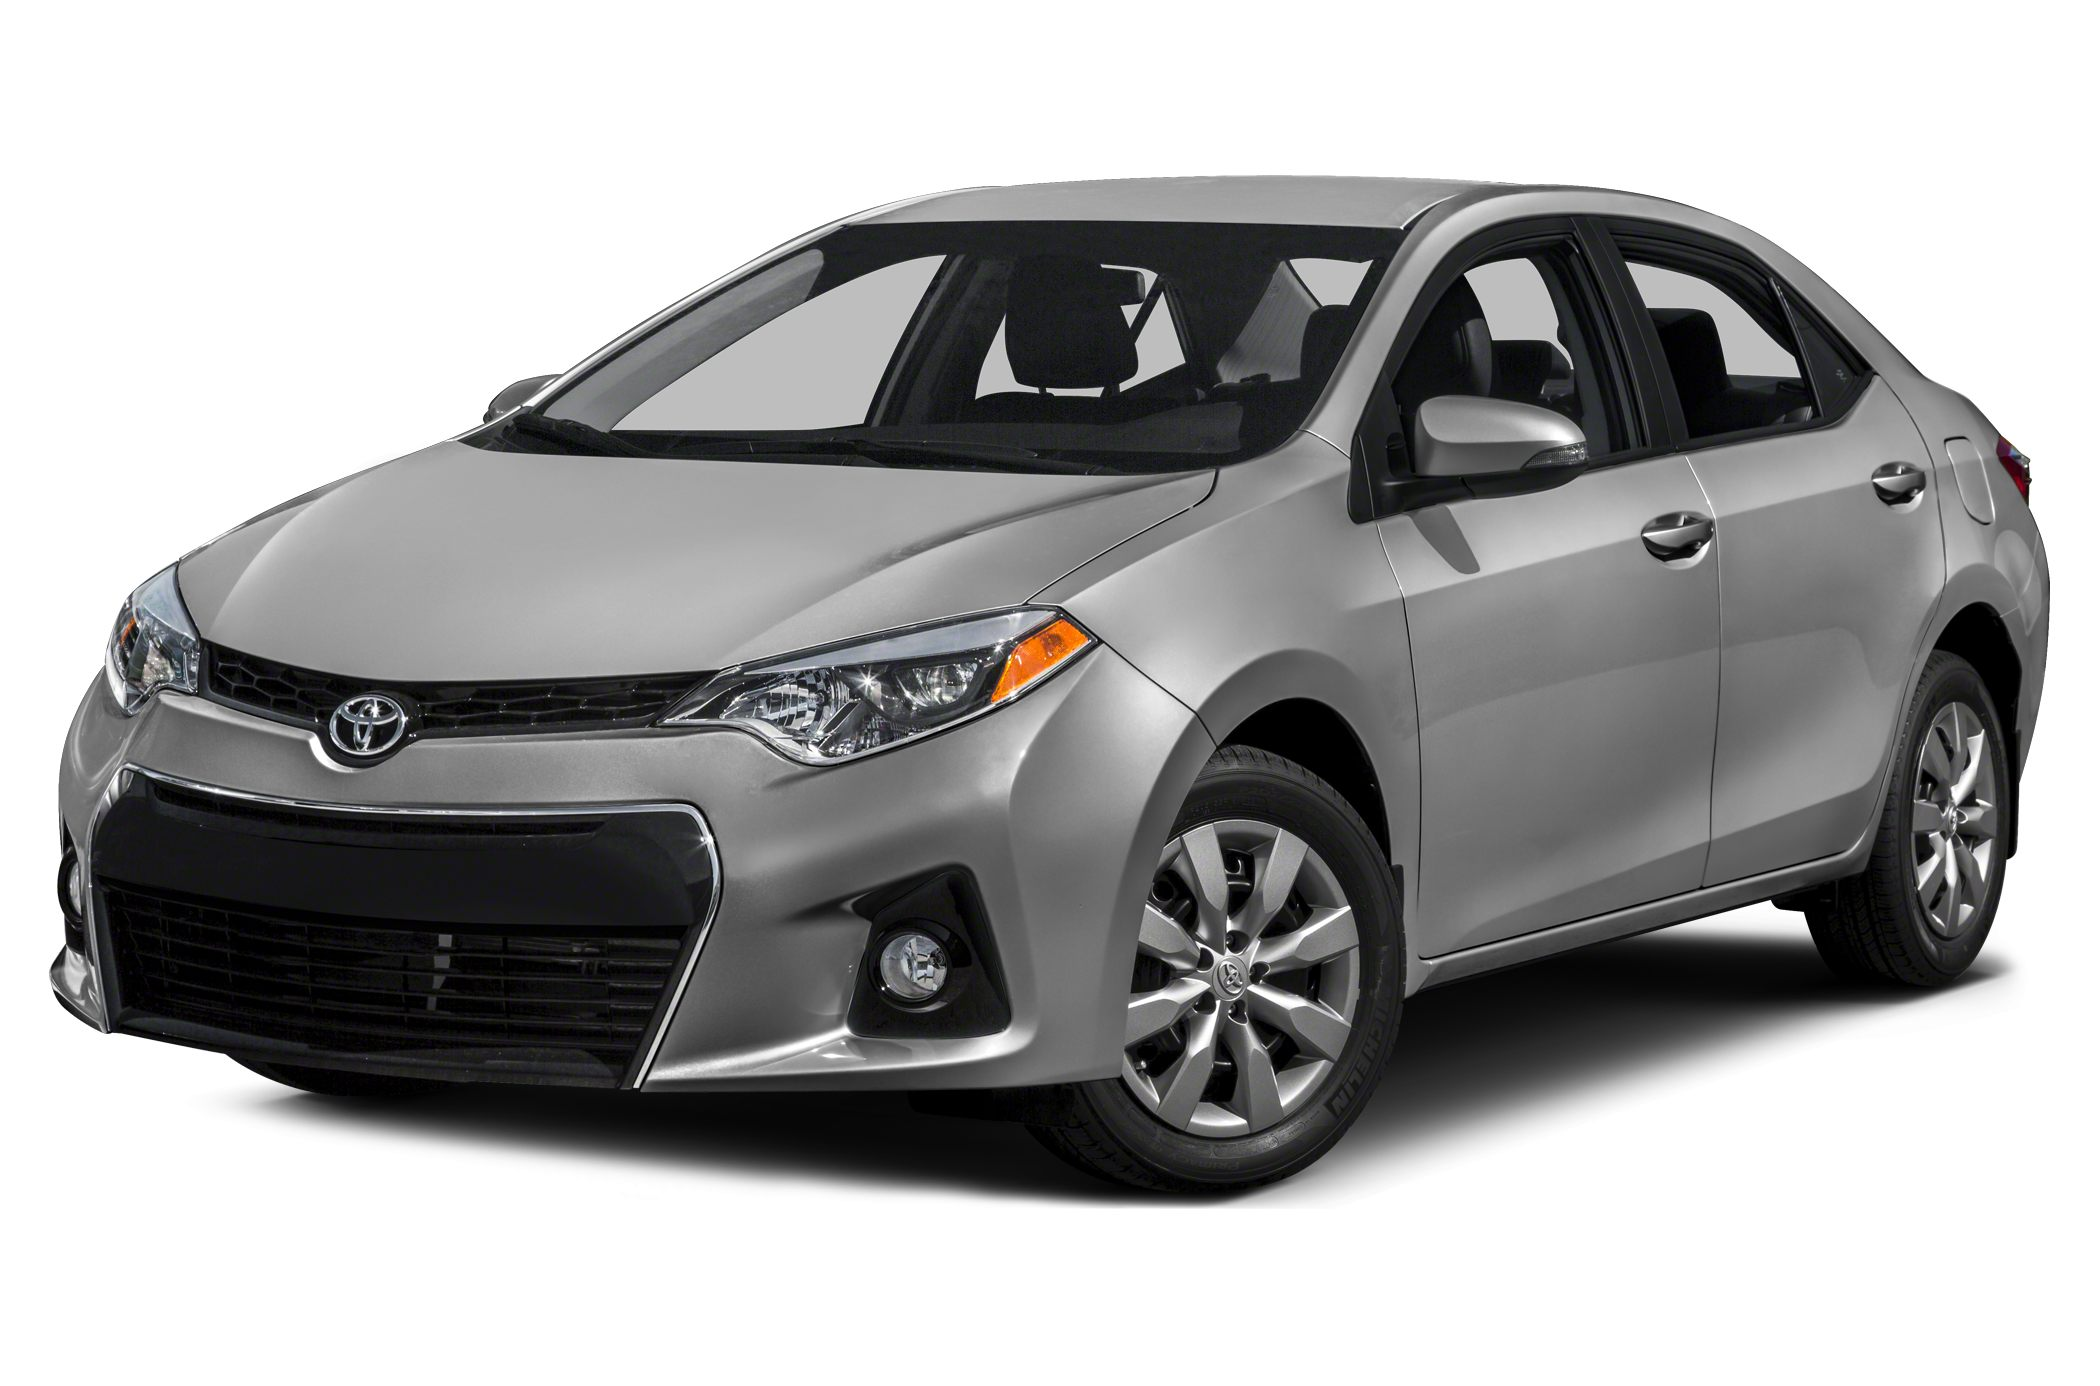 2015 Toyota Corolla S Plus Sedan for sale in Farmington Hills for $20,026 with 0 miles